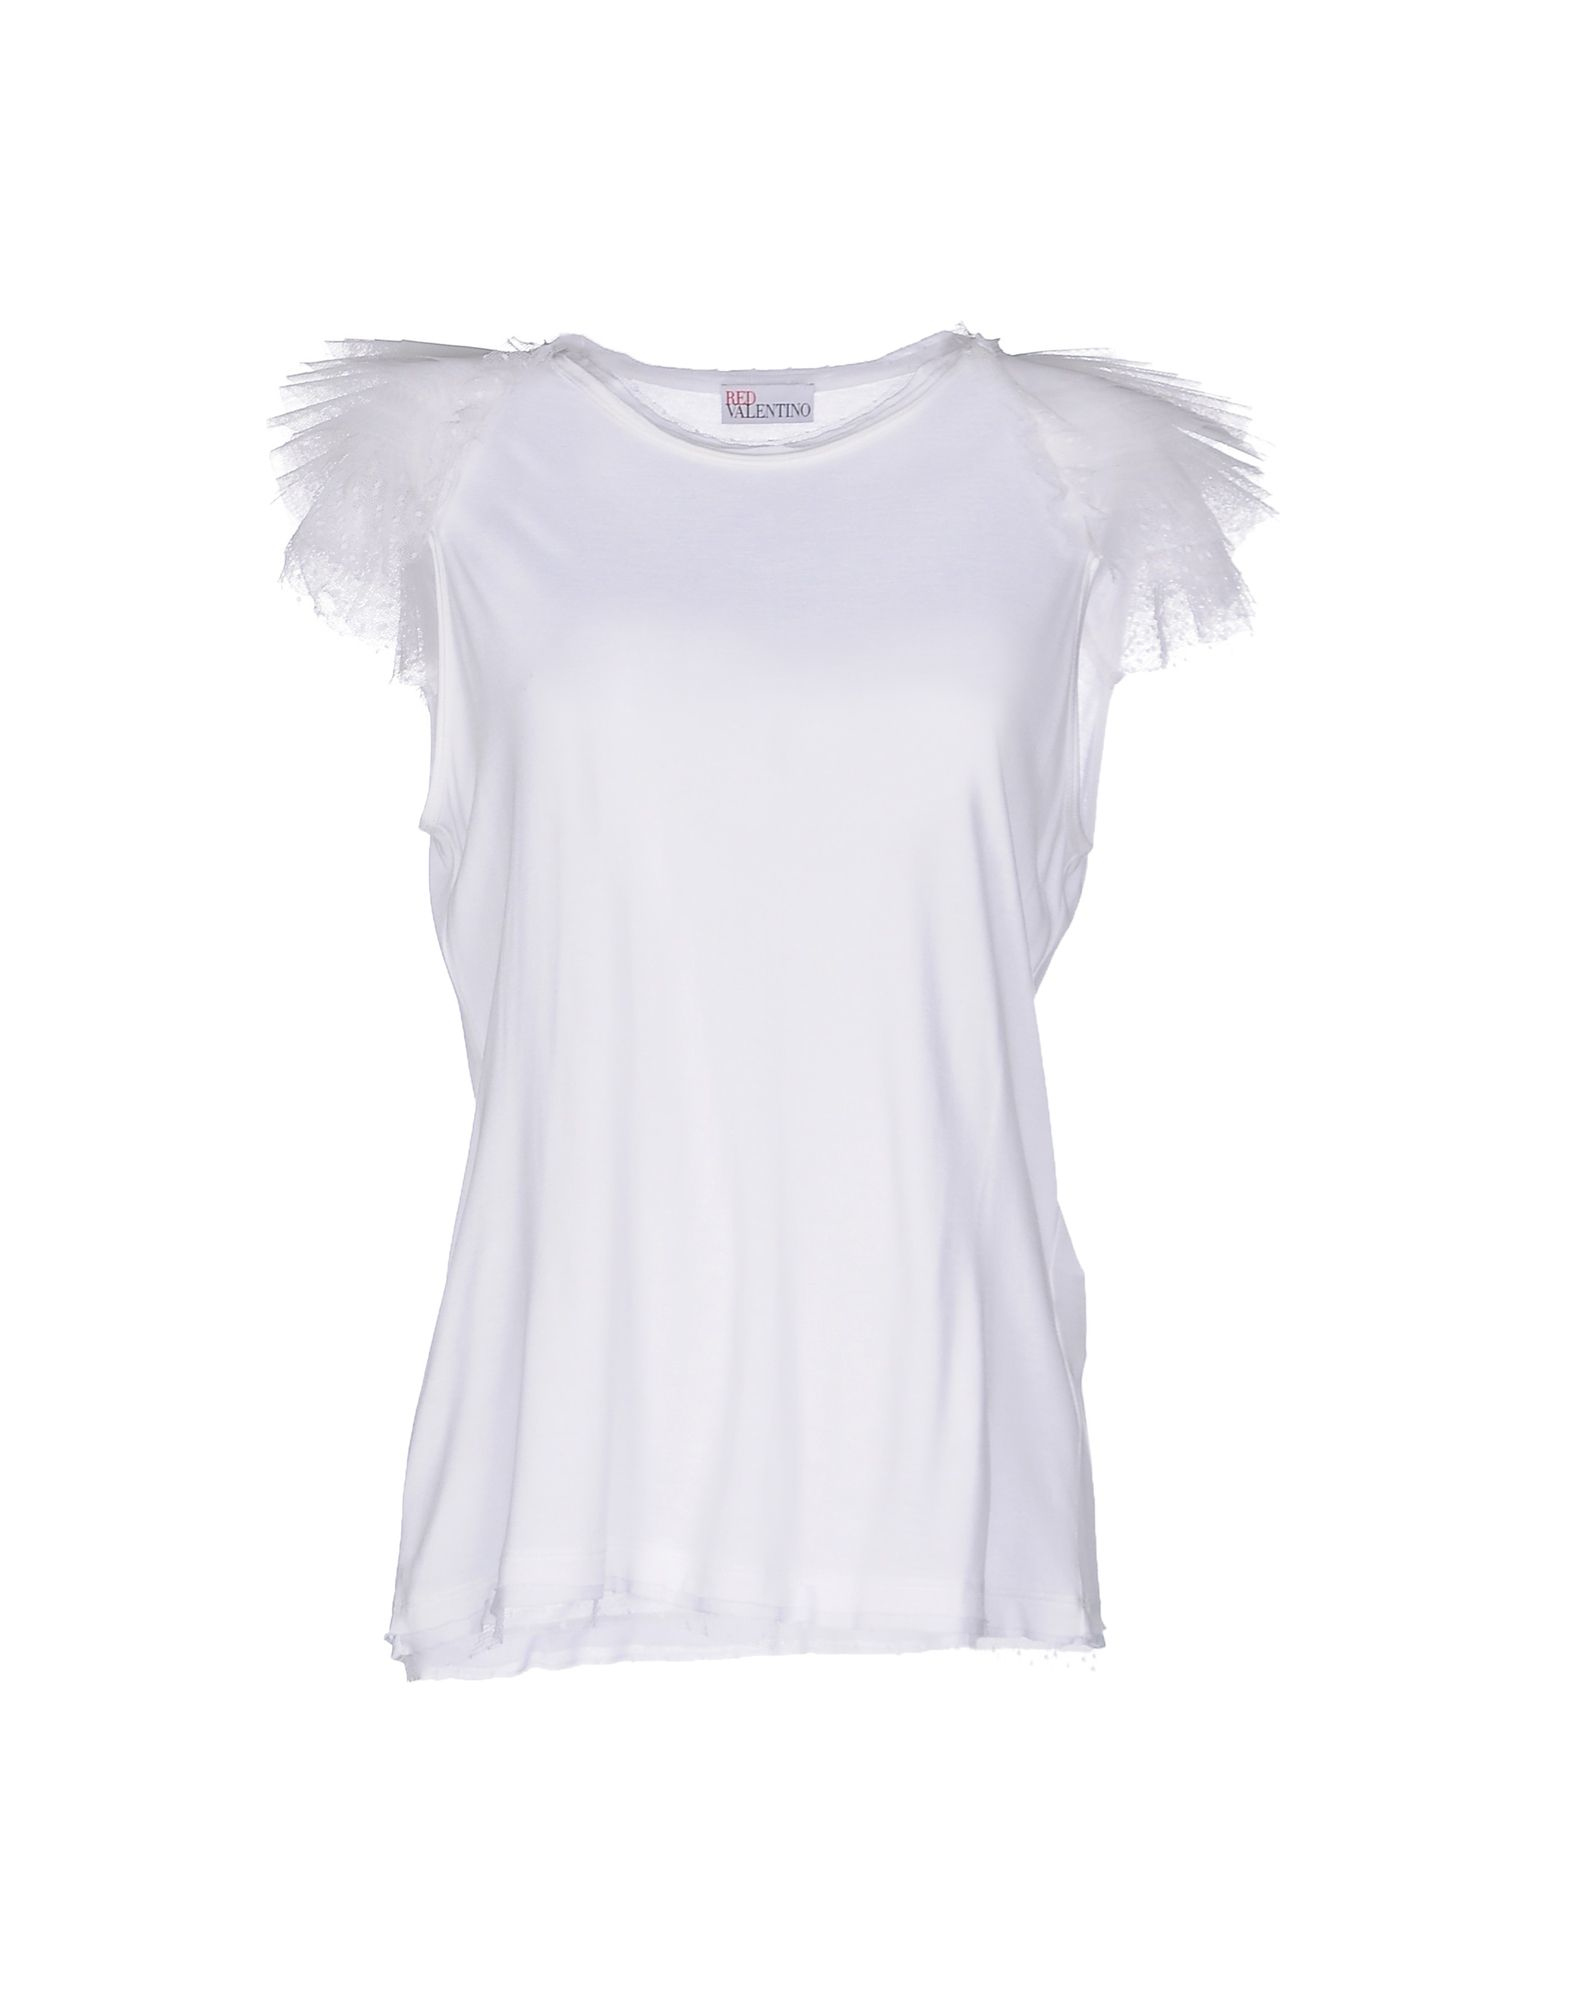 Red valentino t shirt in white save 23 lyst for Red valentino t shirt